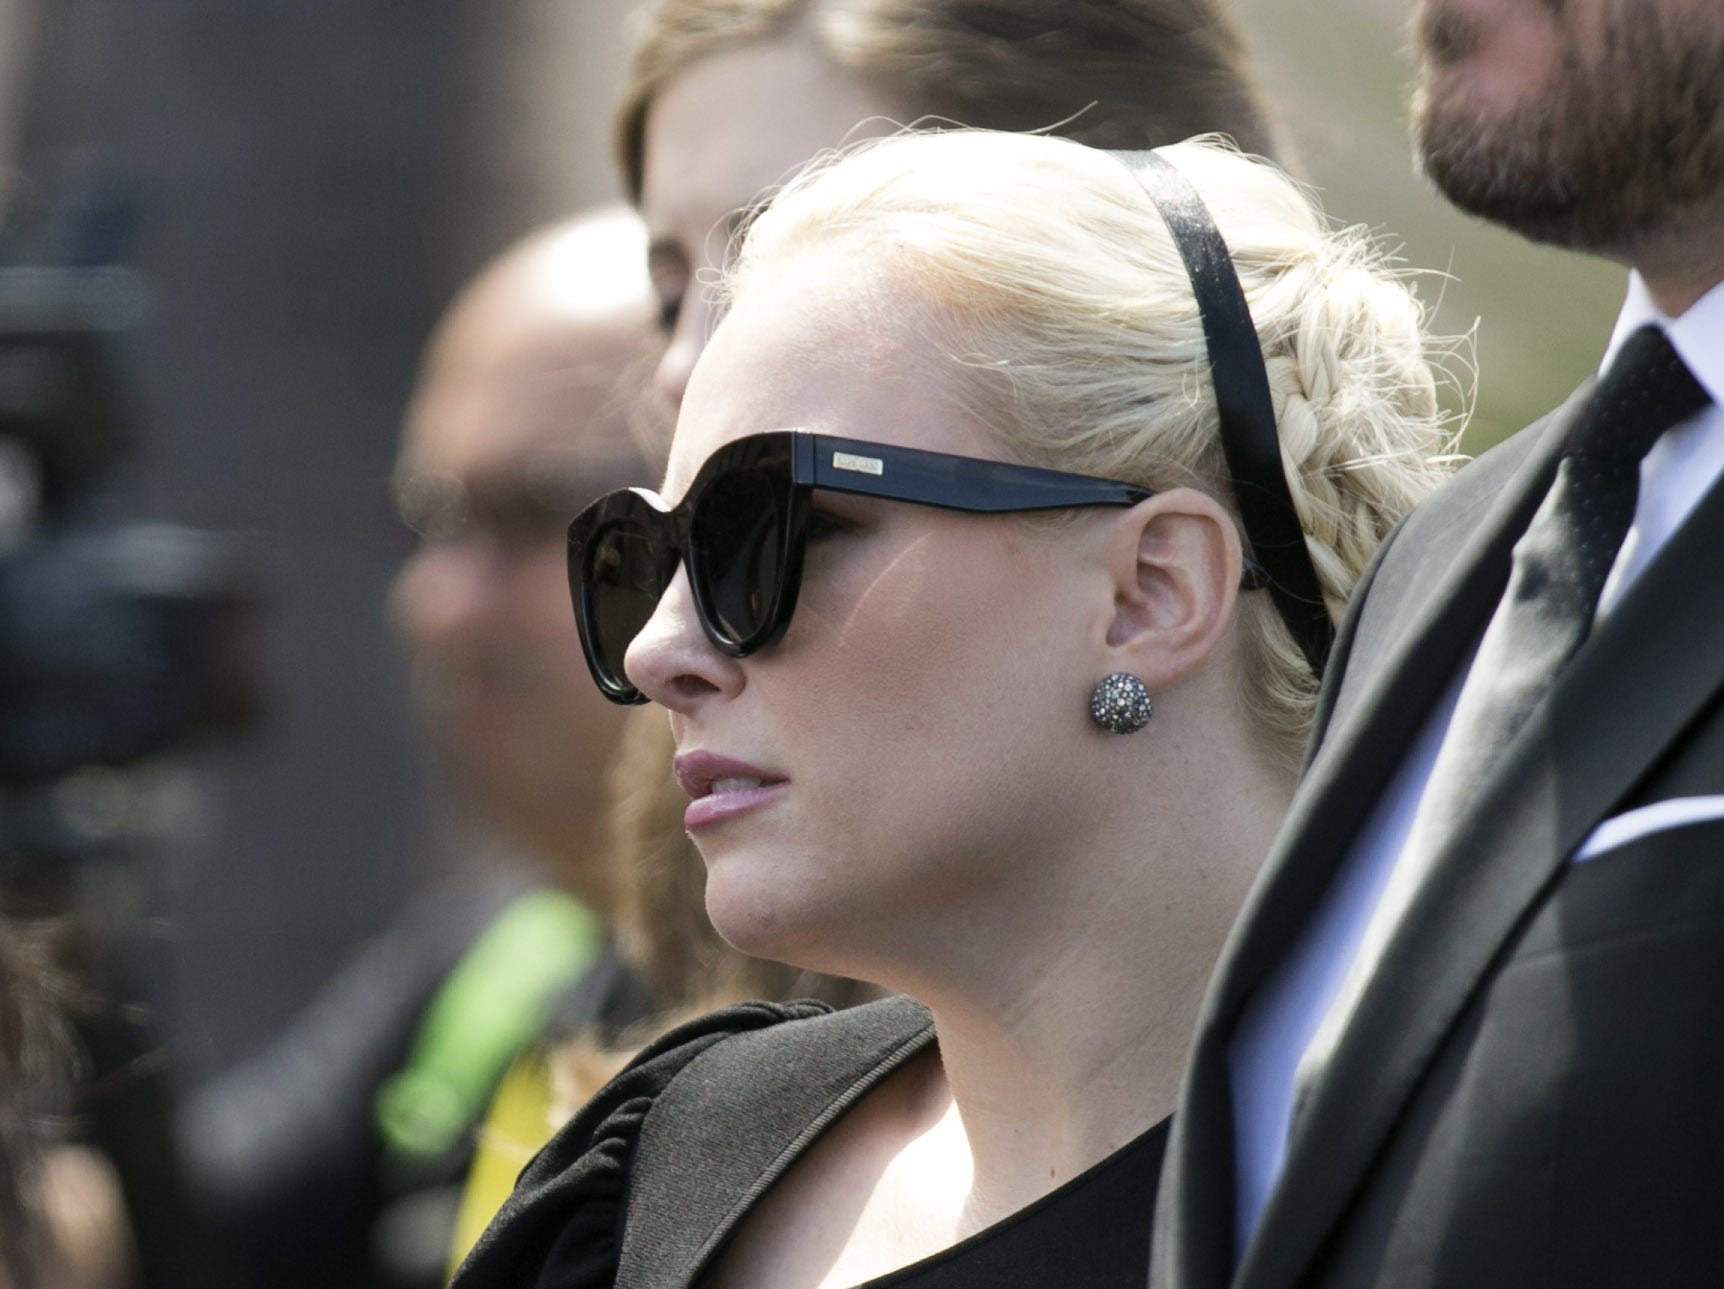 Senator John McCain's daughter, Meghan McCain, looks on following a memorial service for Senator McCain at North Phoenix Baptist Church in Phoenix, Aug. 30, 2018.